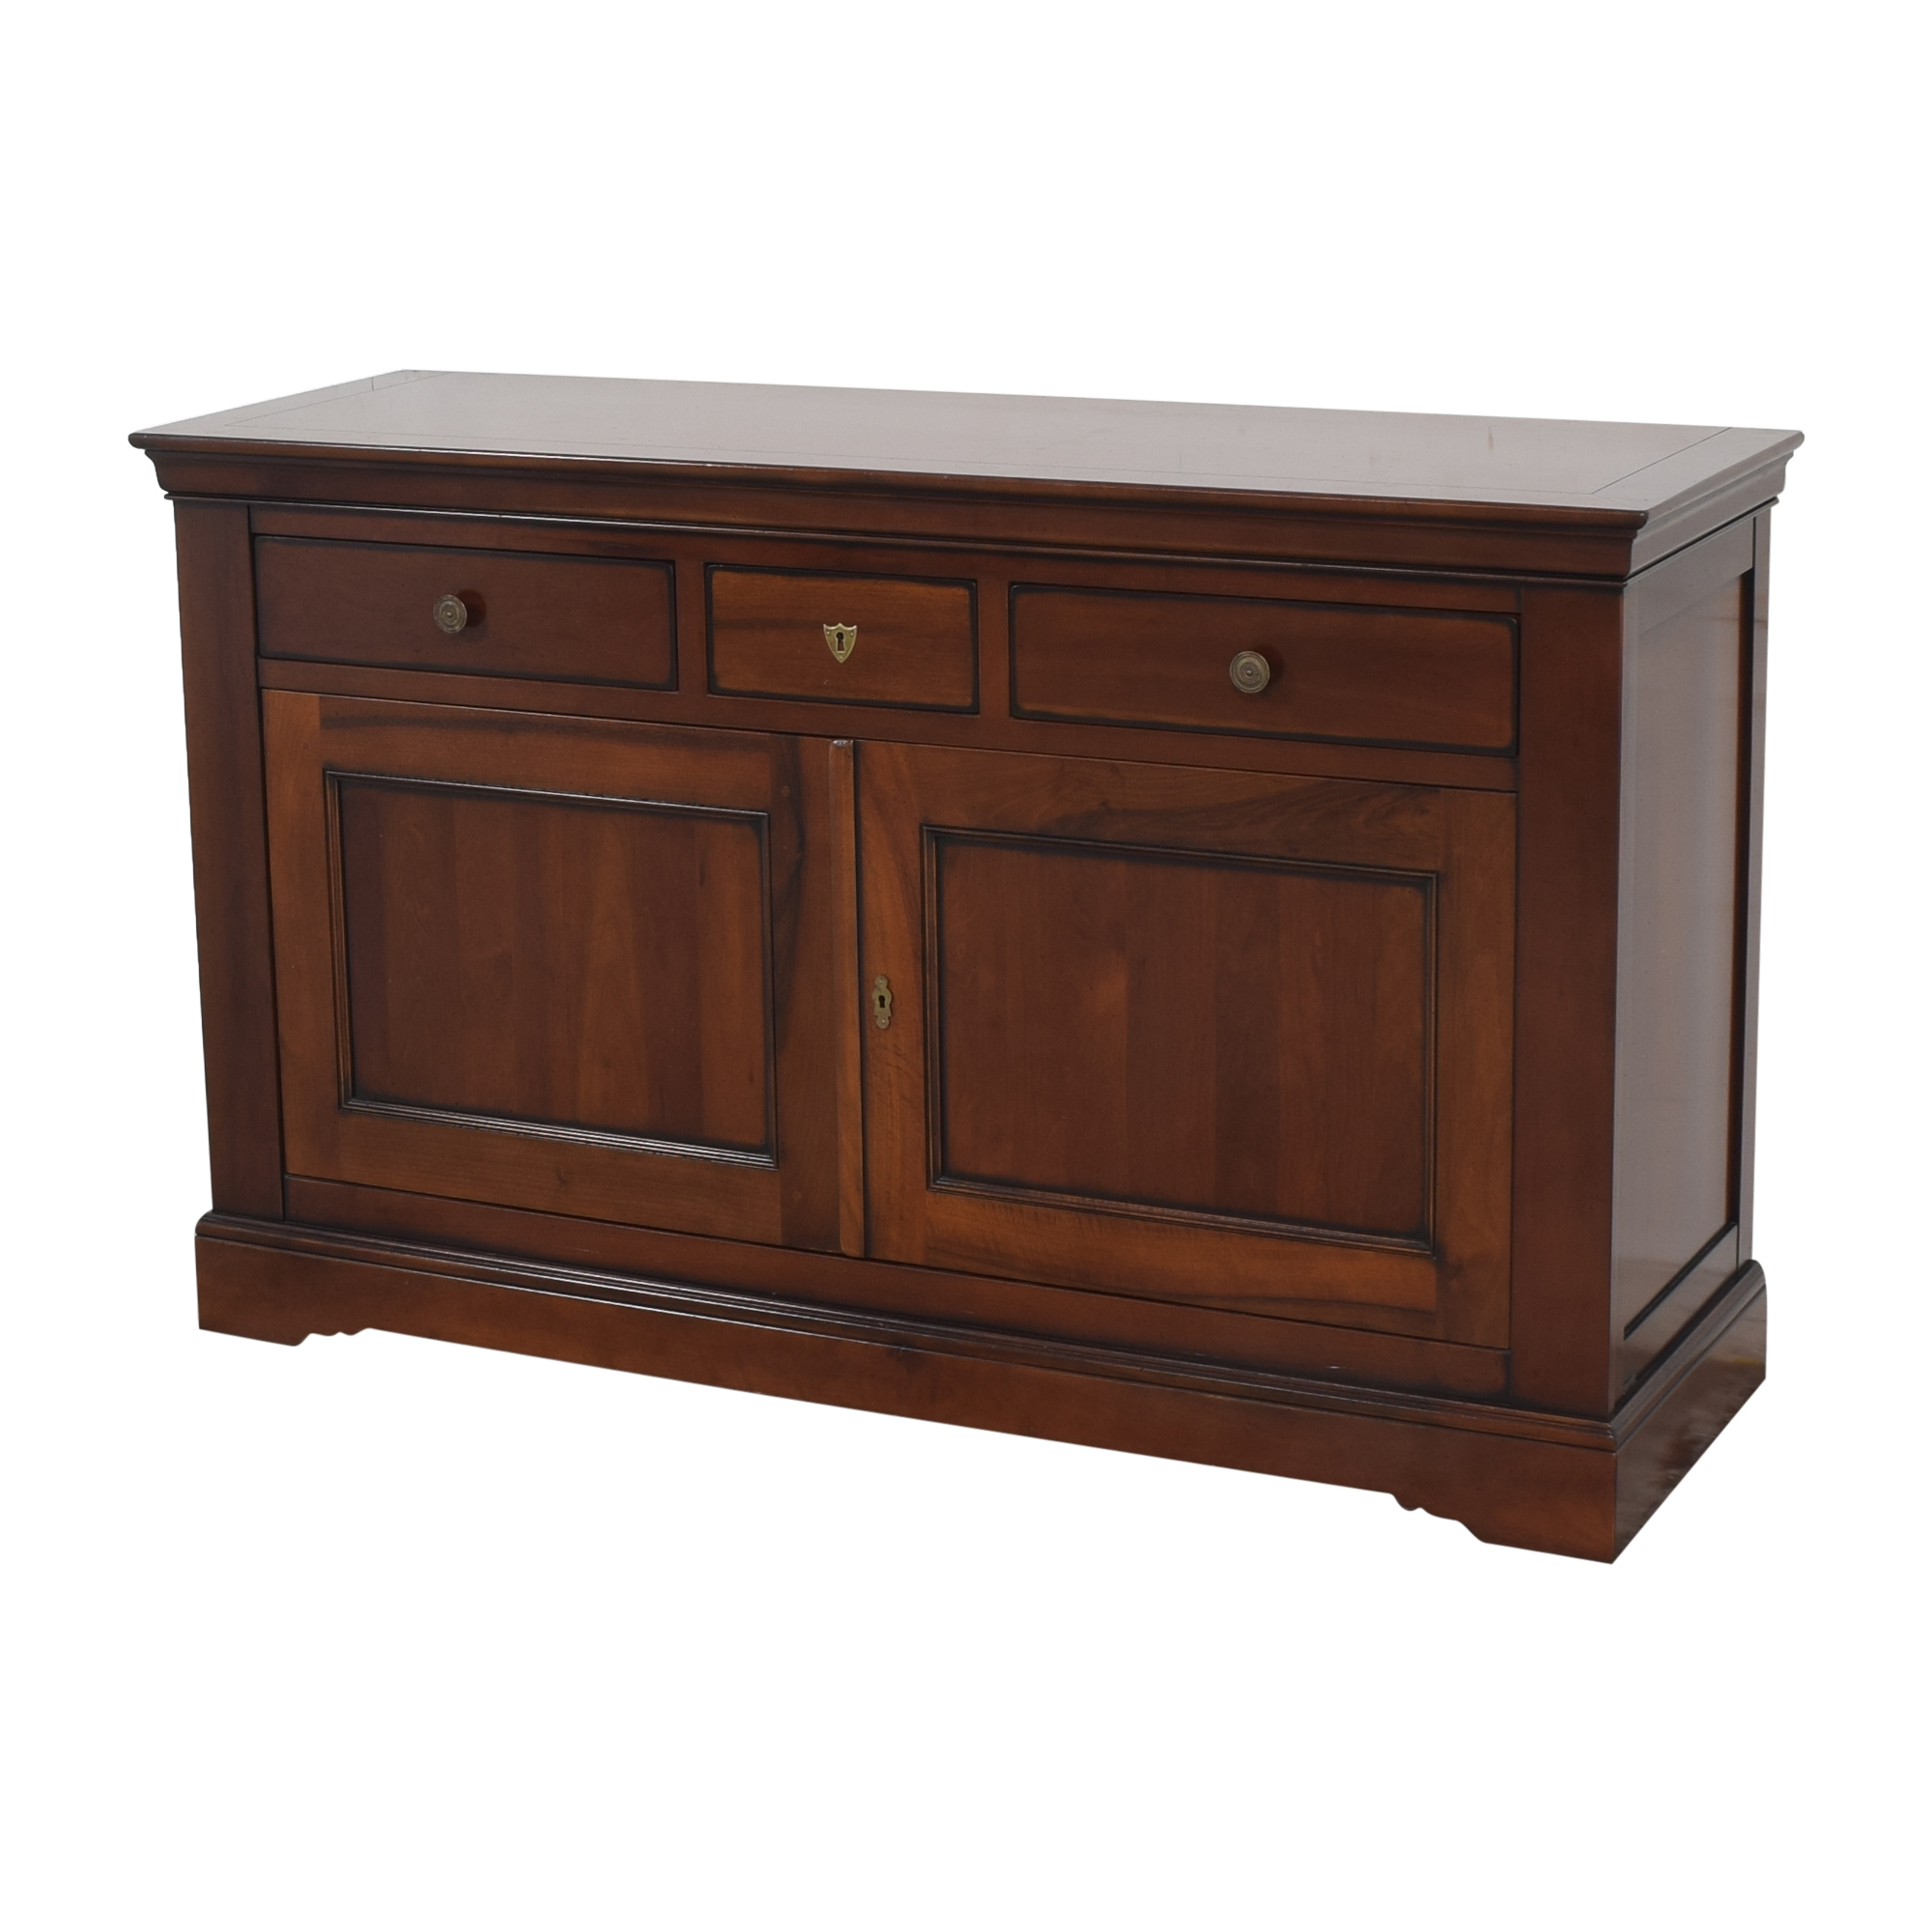 Grange Grange French Sideboard with Cabinets brown